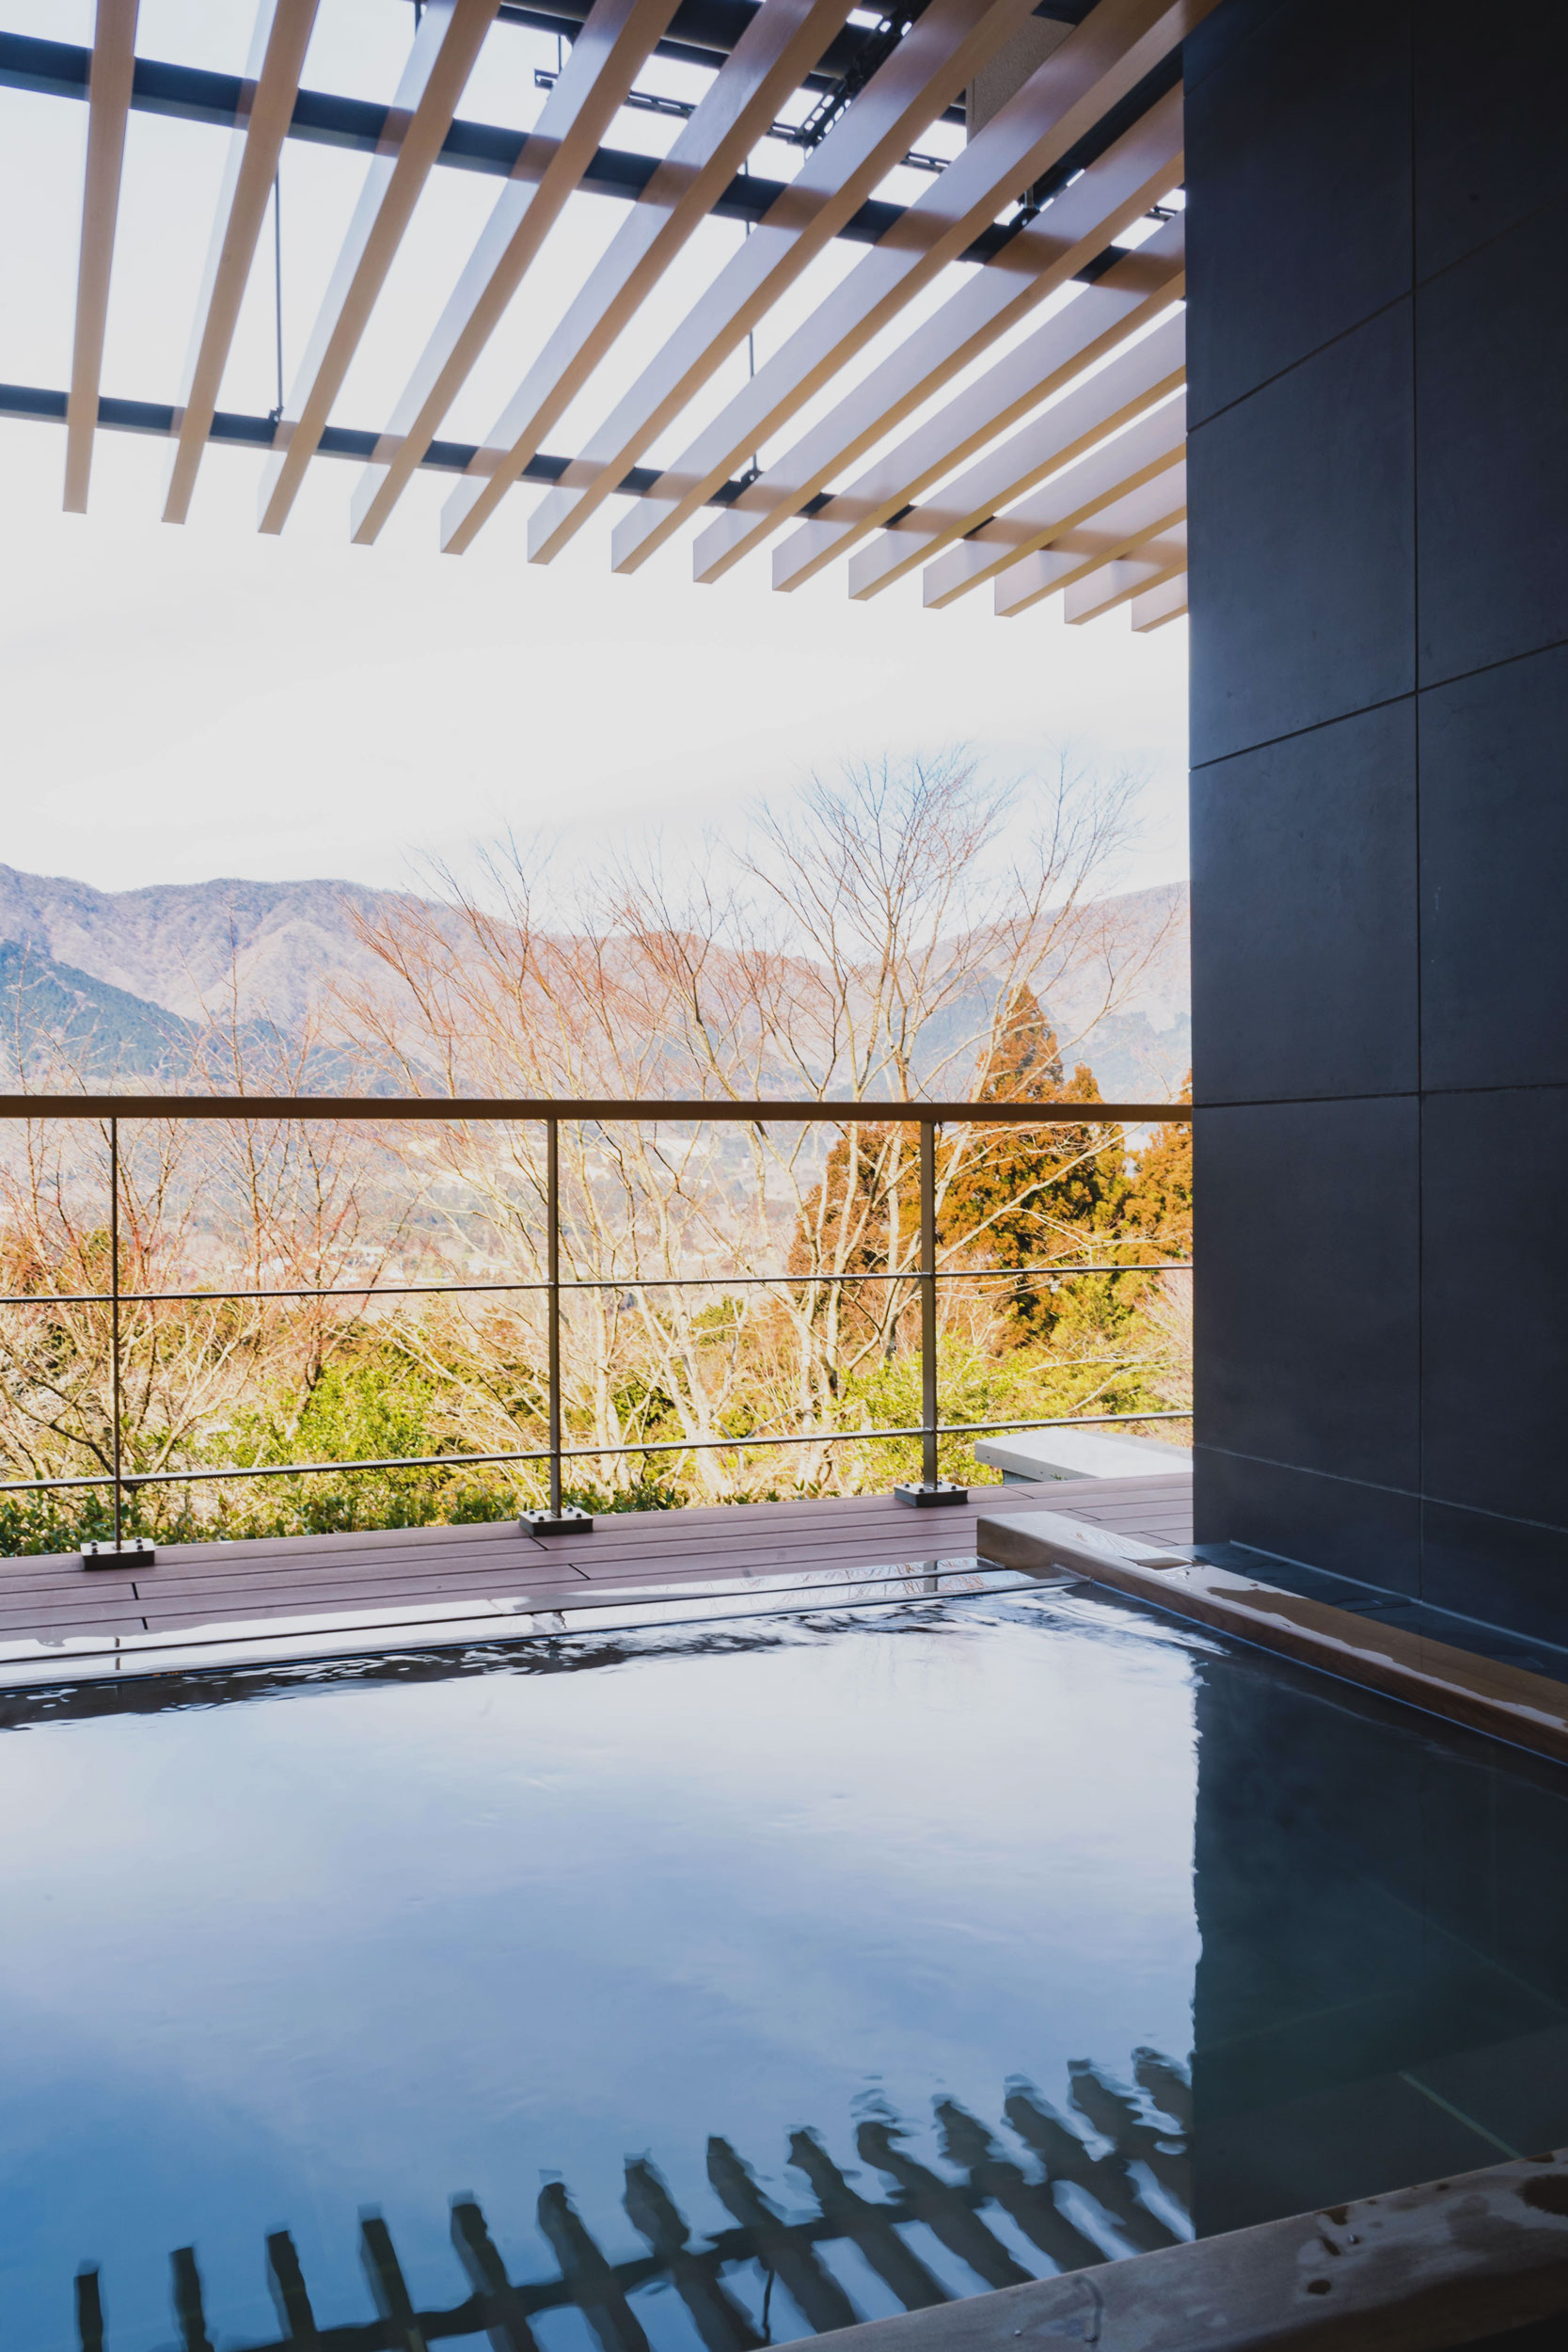 Private onsen tub at Hoshino Resorts KAI Sengokuhara in Hakone